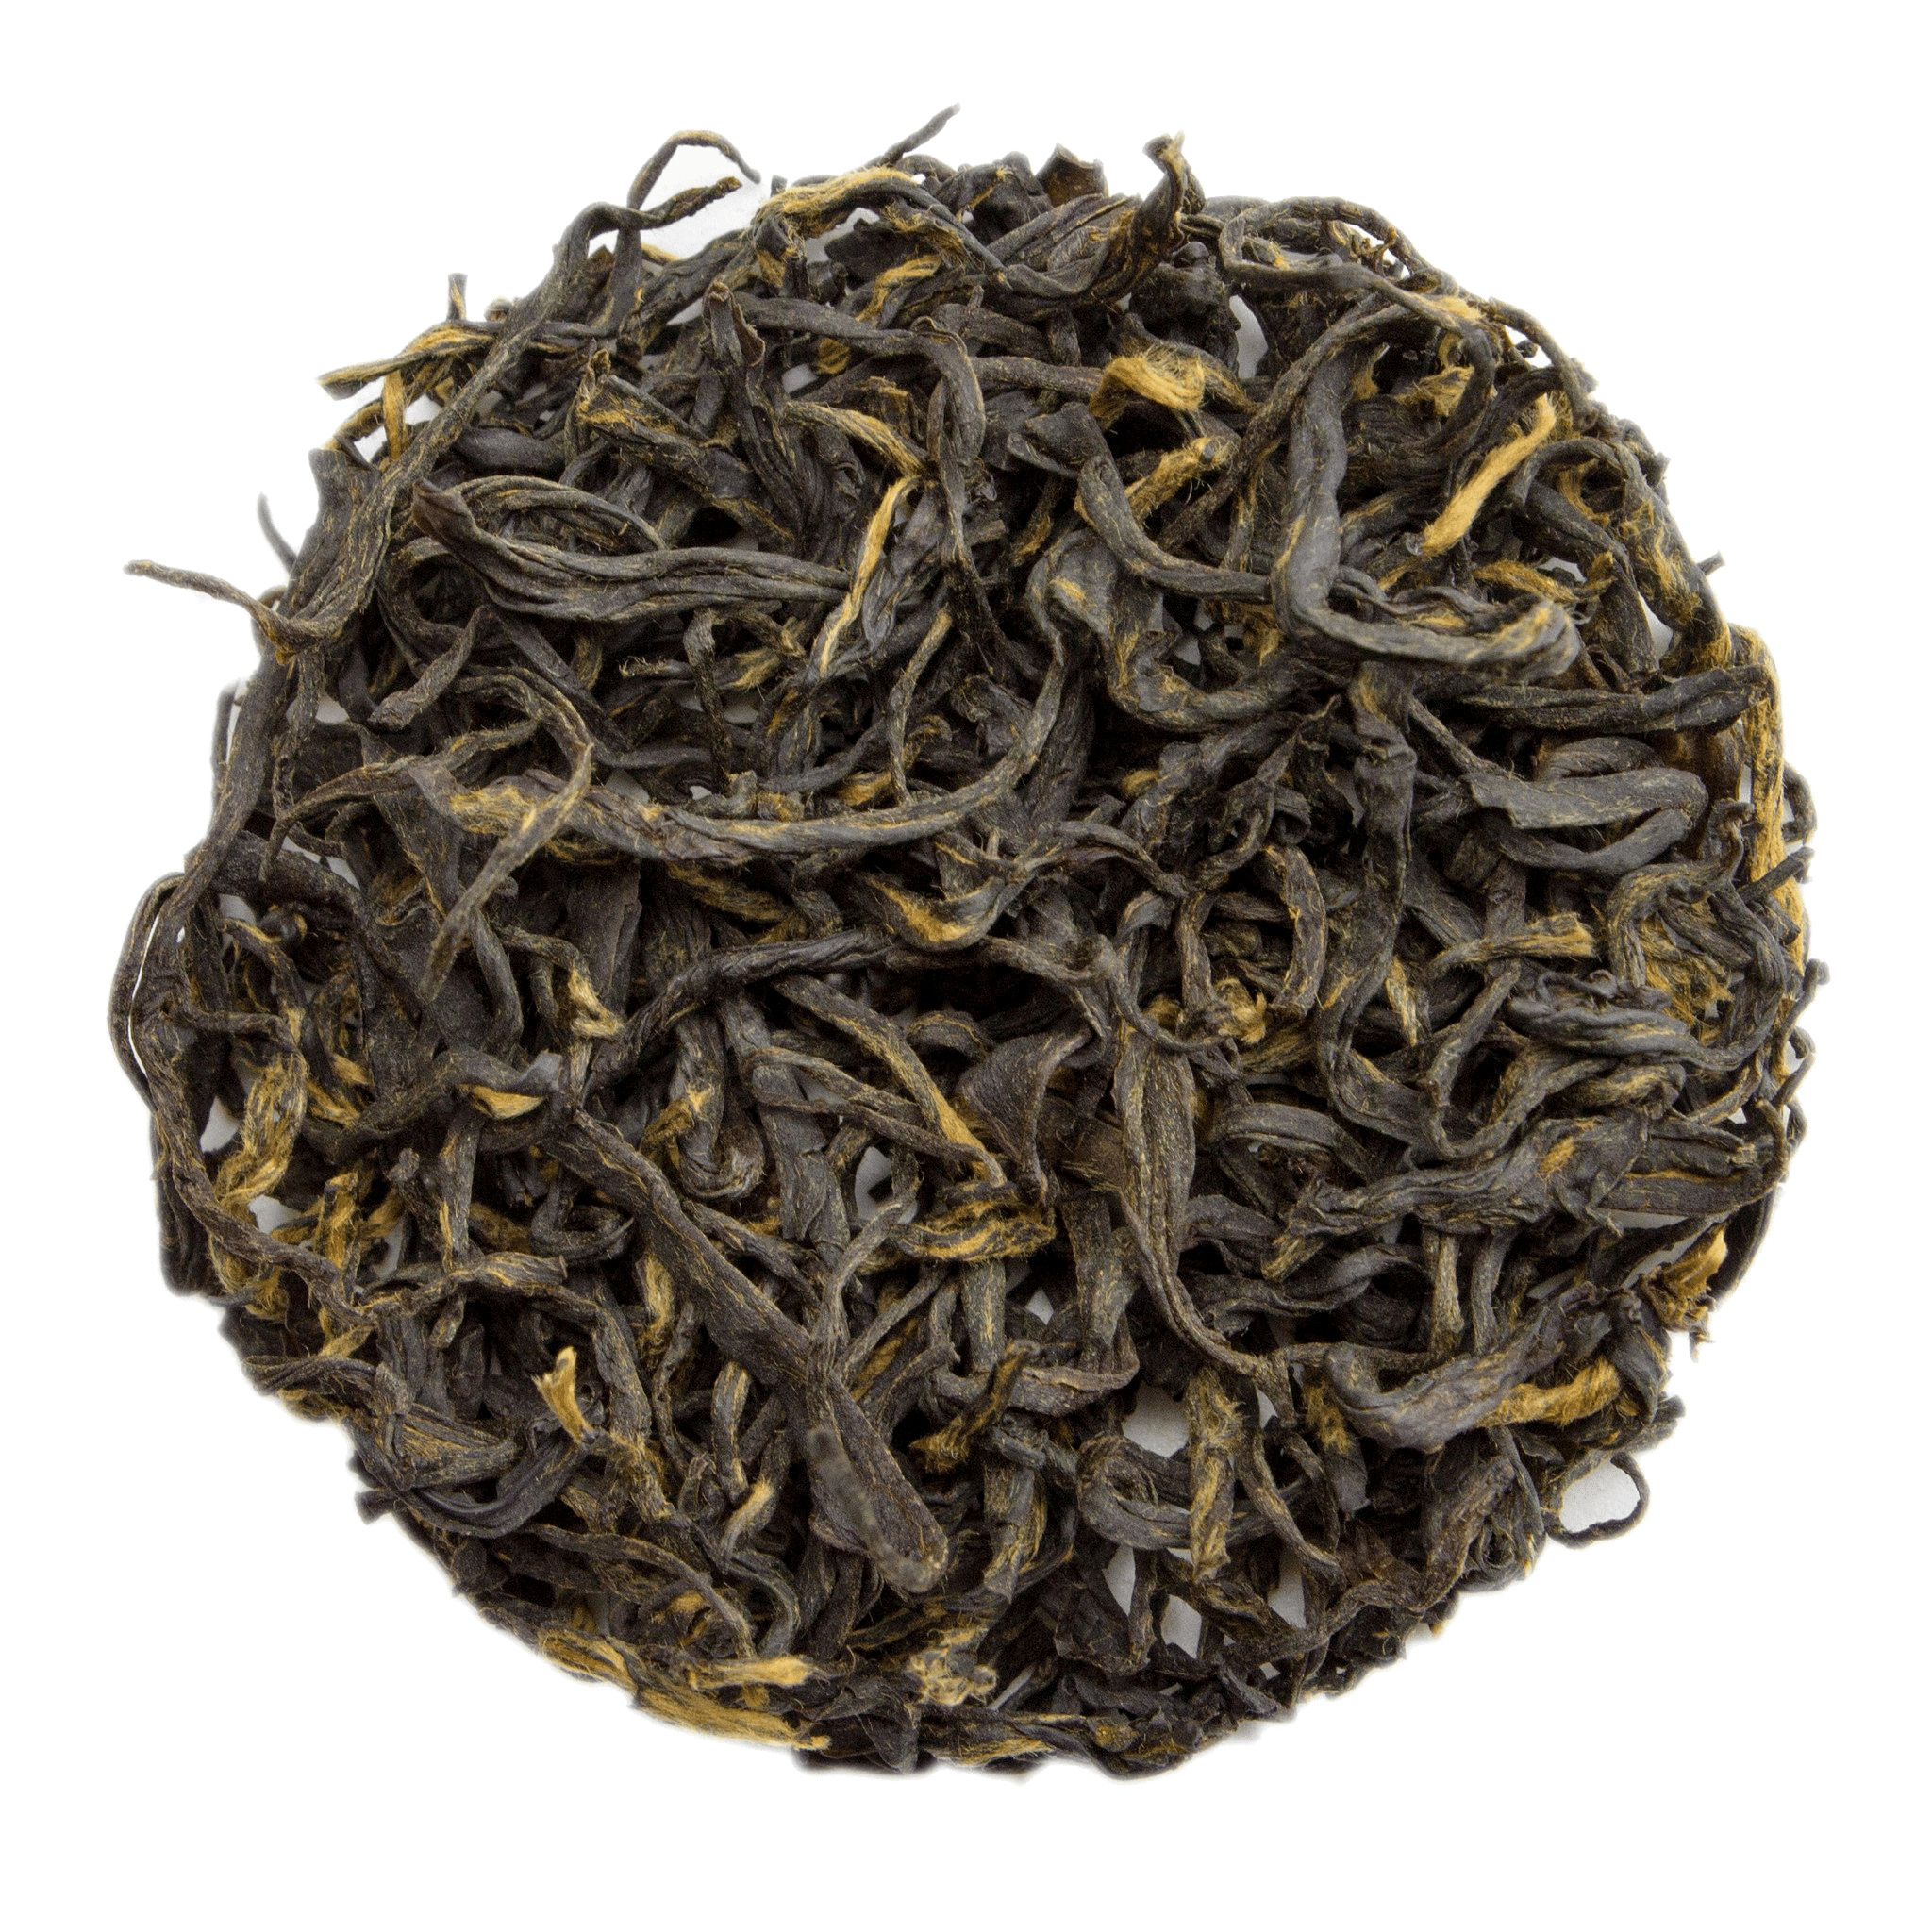 Keemun Mao Feng black tea leaves